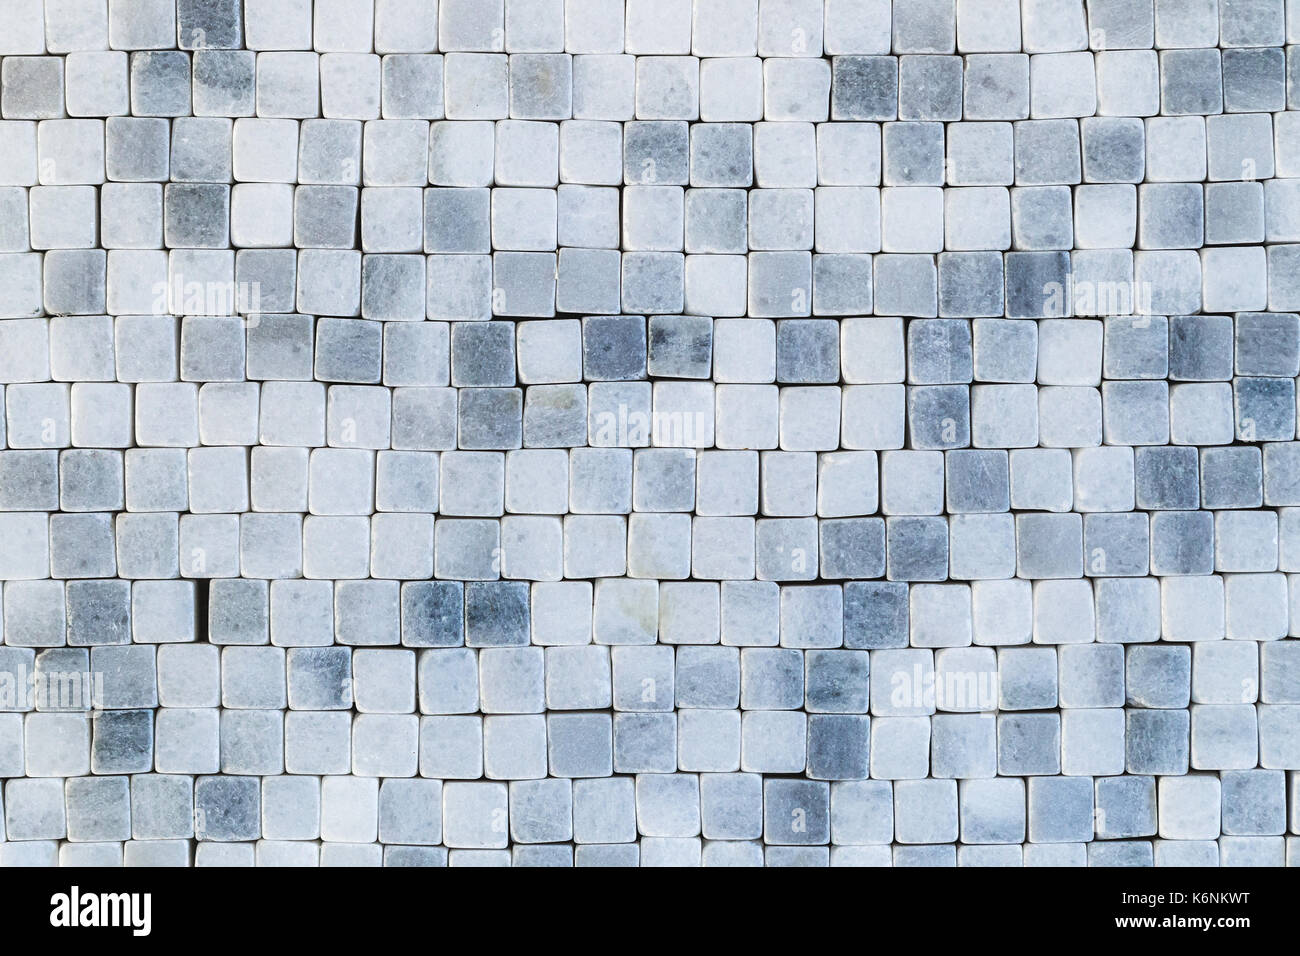 Blue And Brown Mosaic Floor Stock Photos & Blue And Brown Mosaic ...